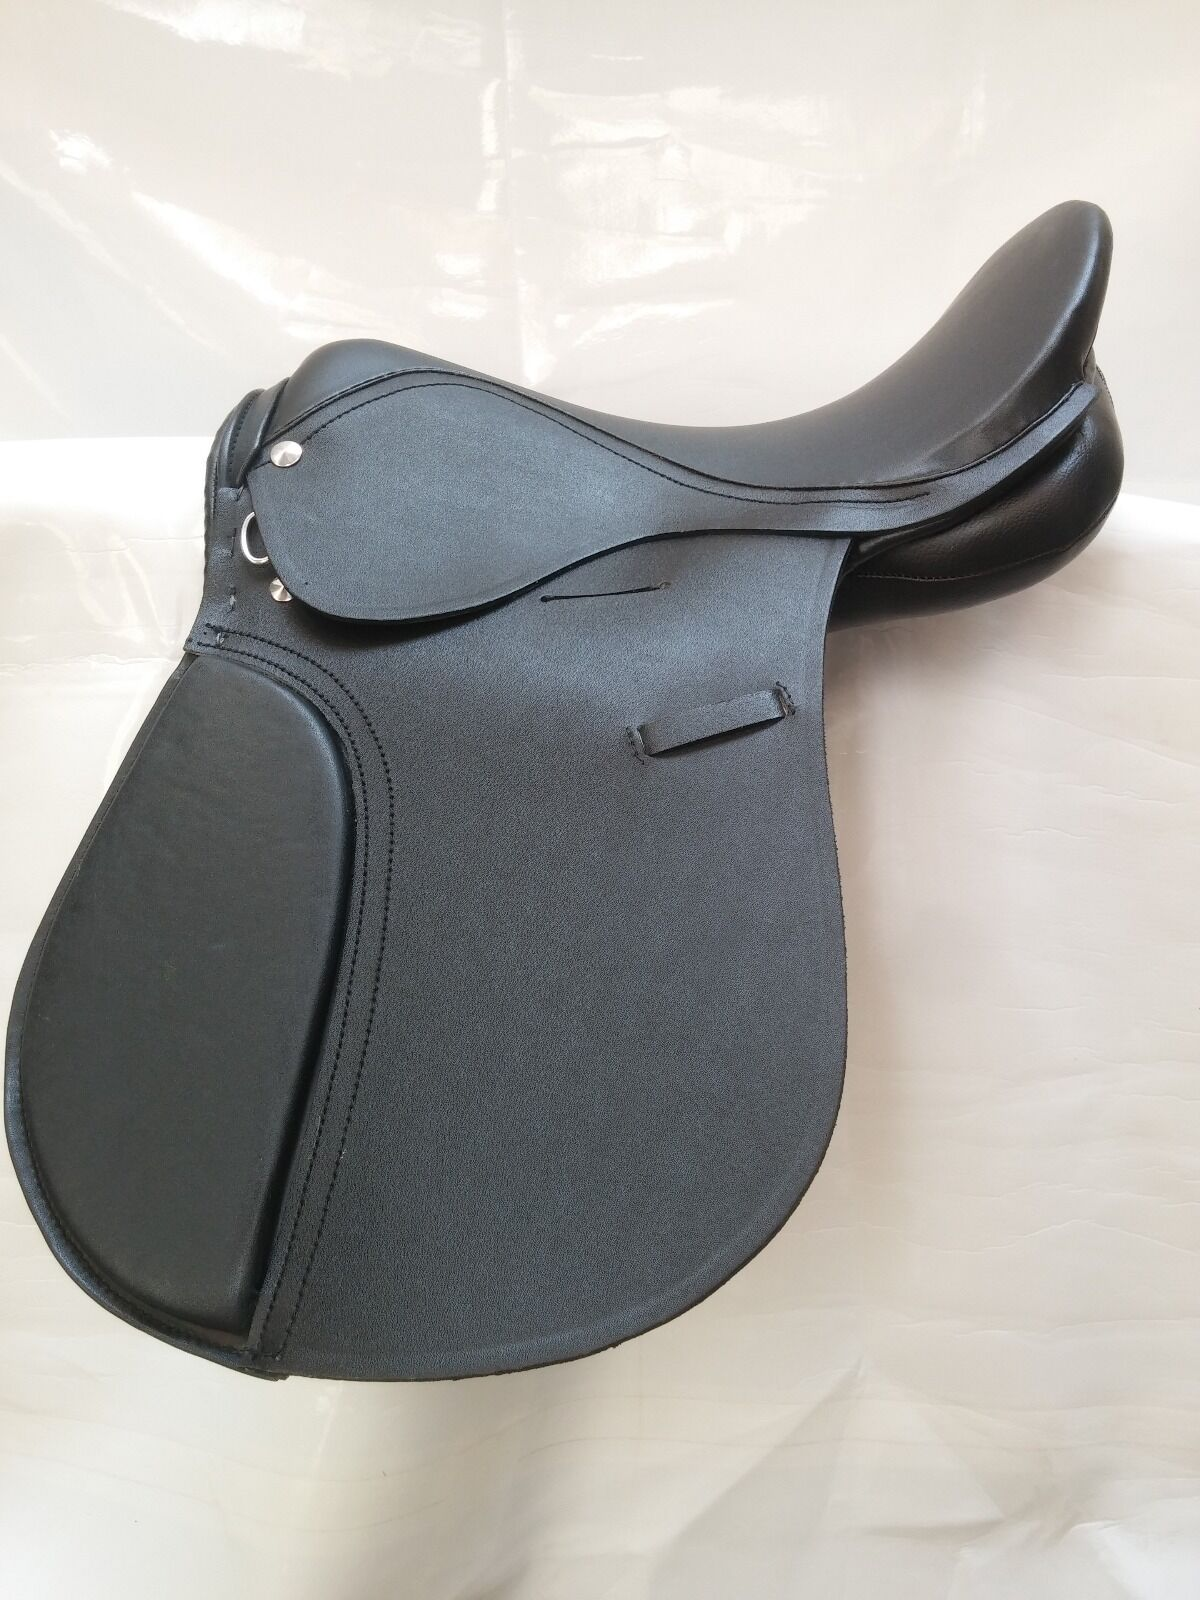 All Purpose English Saddle with Adjustable Knee Pads